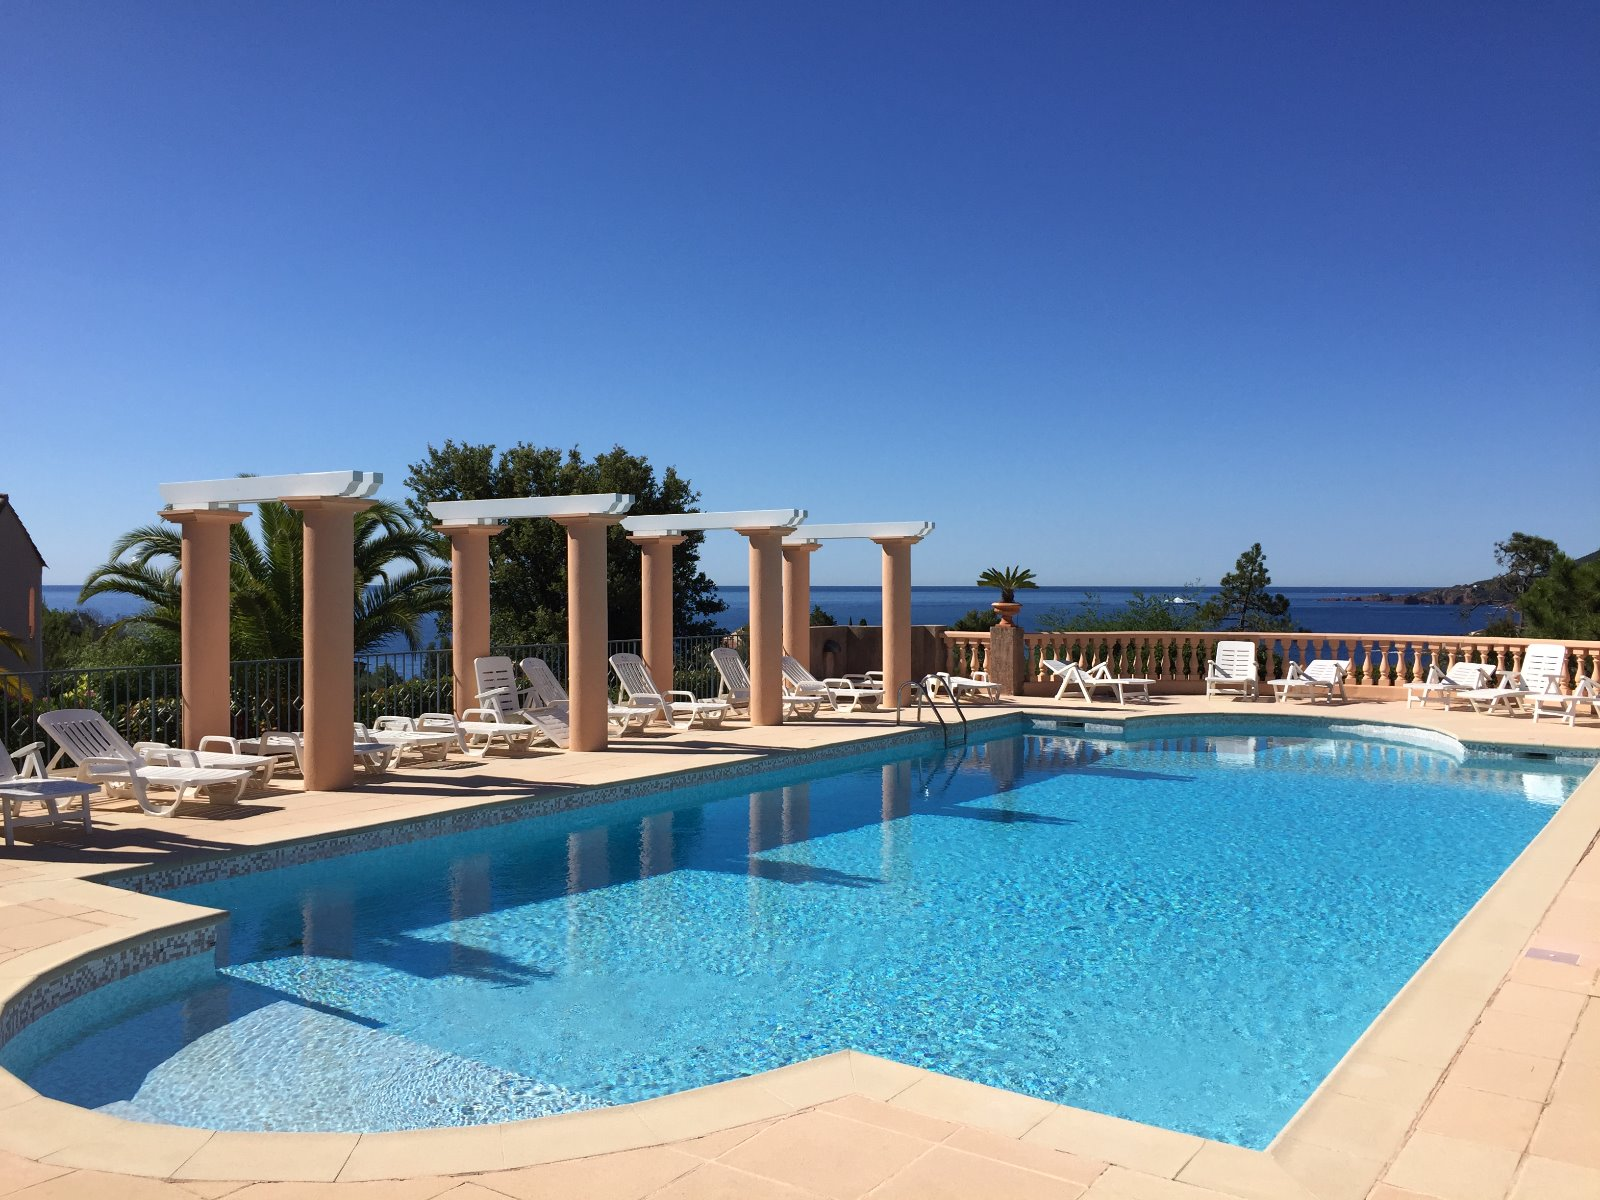 Th oule sur mer 06 alpes maritimes vendre maison for Piscine 2 alpes